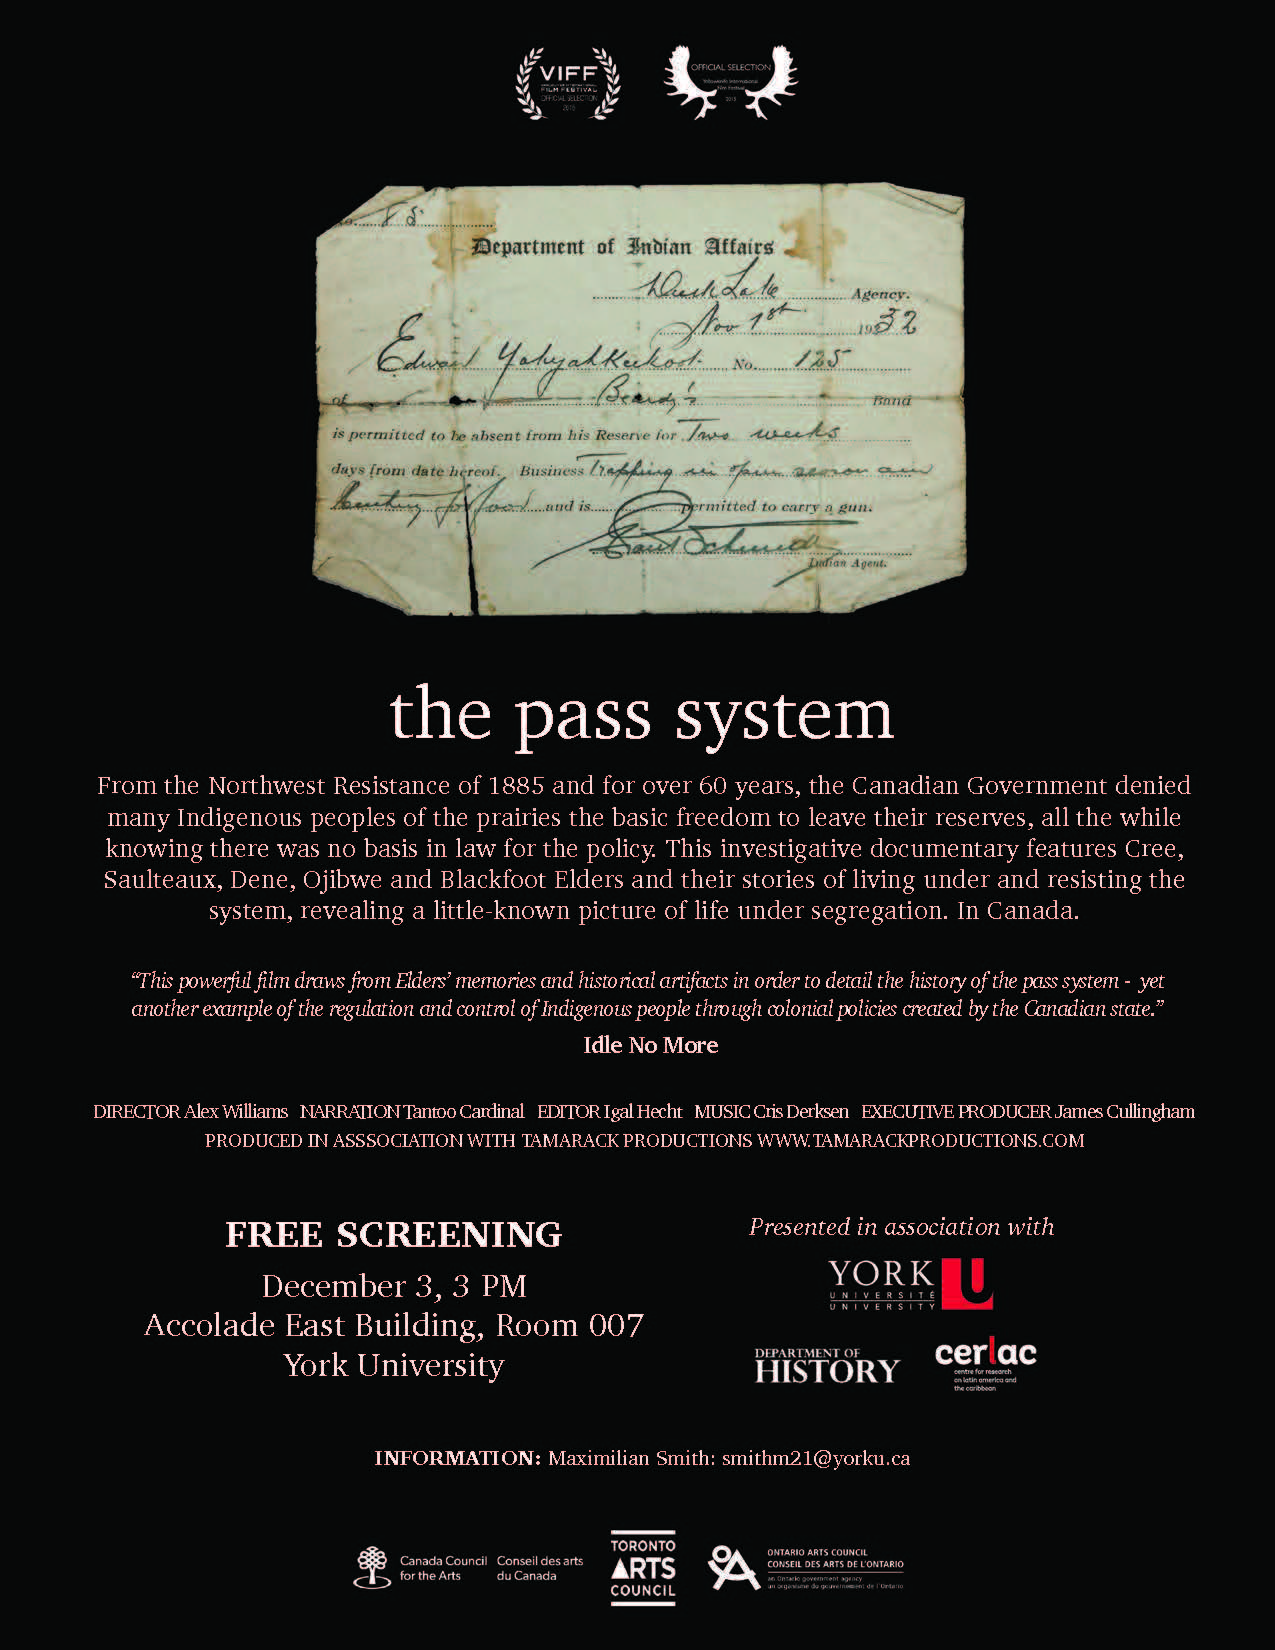 The pass system Poster York Screening reduced